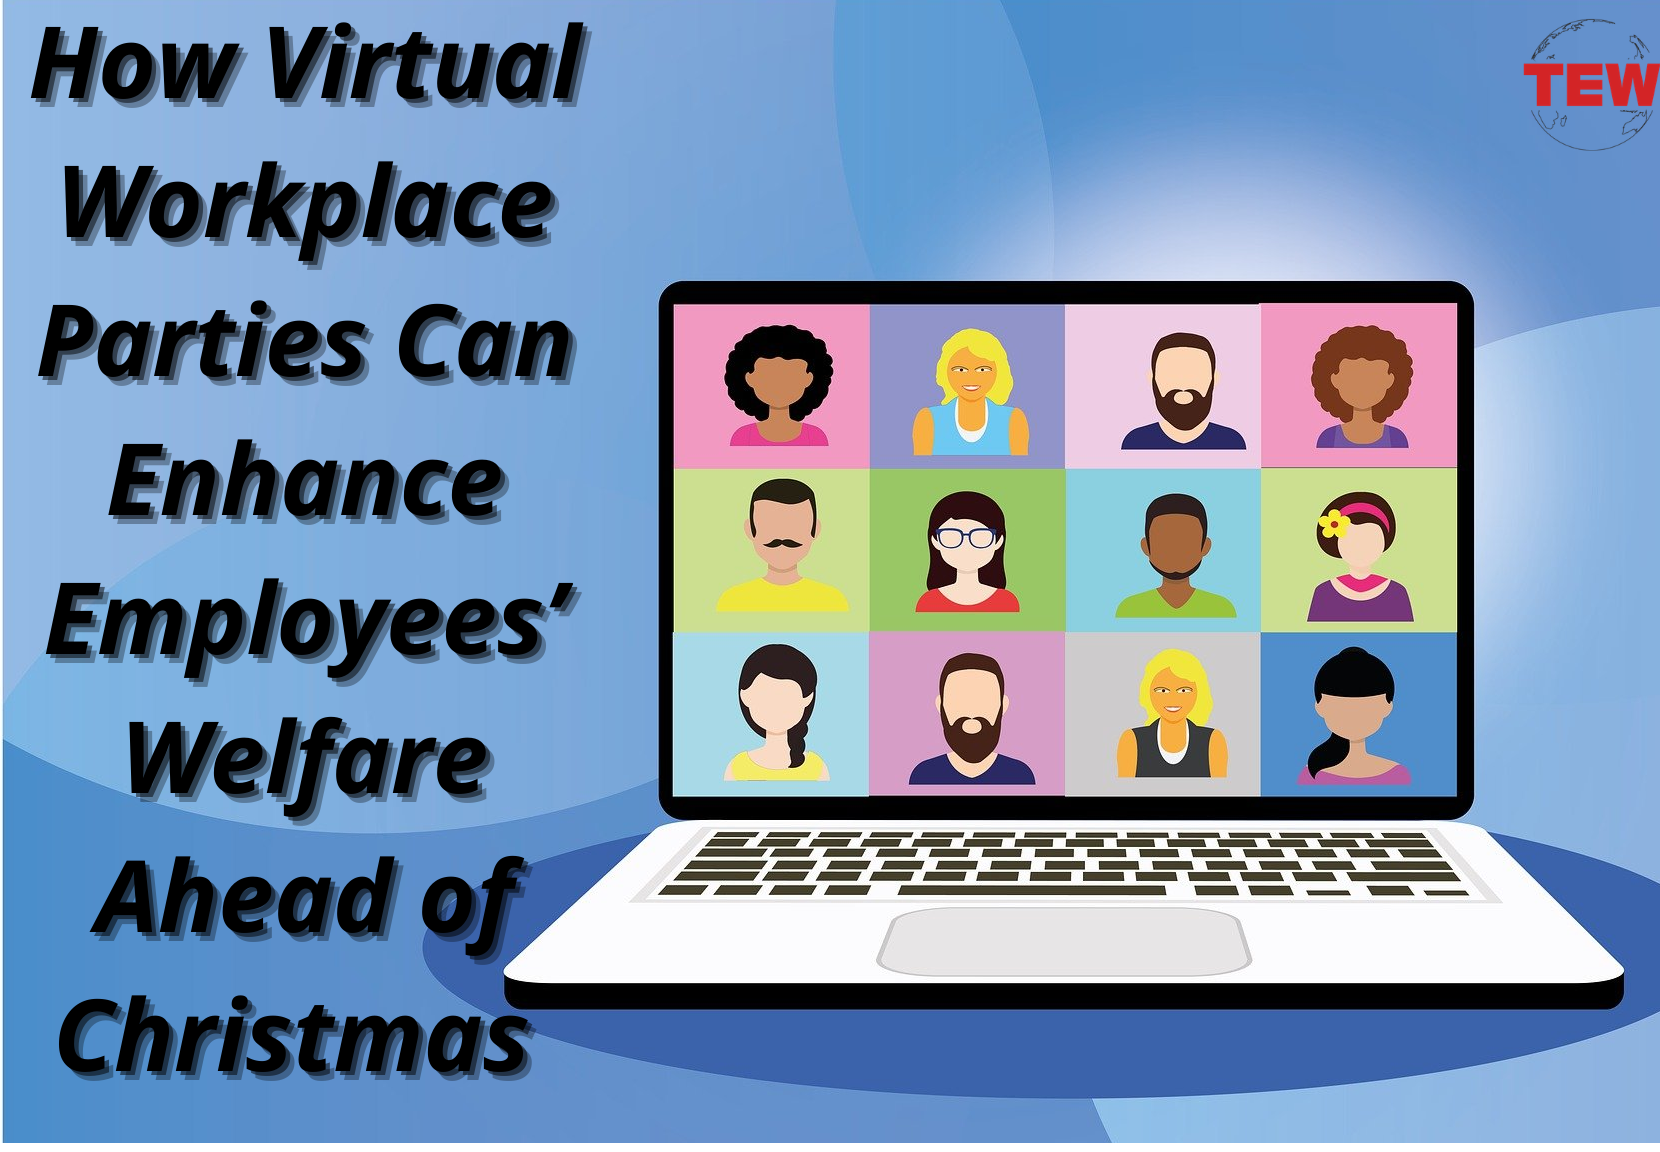 How Virtual Workplace Parties Can Enhance Employees' Welfare Ahead of Christmas